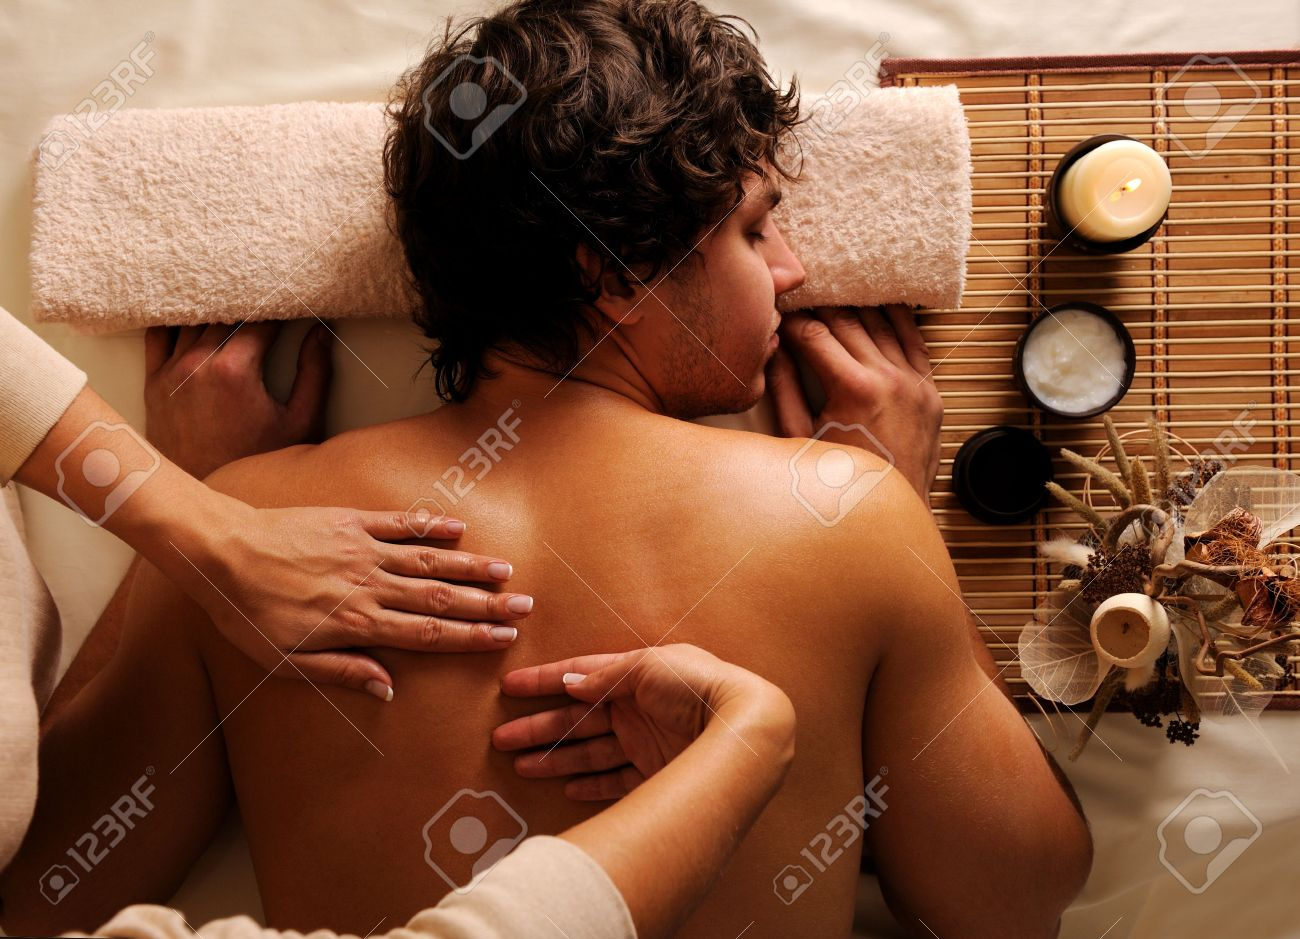 The young man on relaxation, recreation, healthy massage in a beauty salon. High angle view. Low key light Stock Photo - 5878903